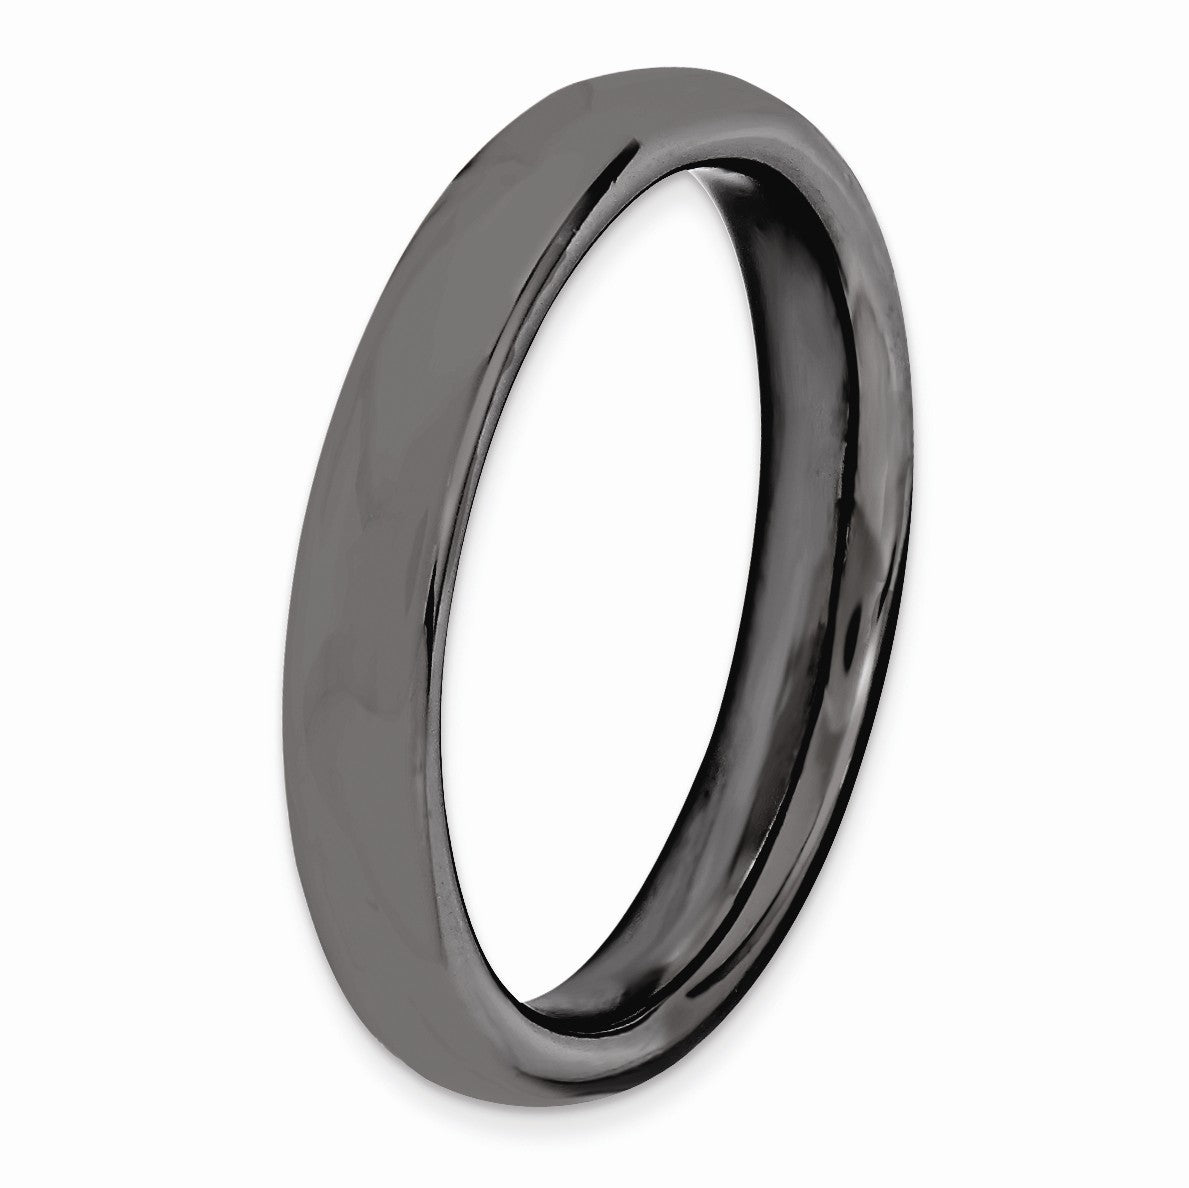 Alternate view of the 3.25mm Black Plated Sterling Silver Stackable Polished Band by The Black Bow Jewelry Co.